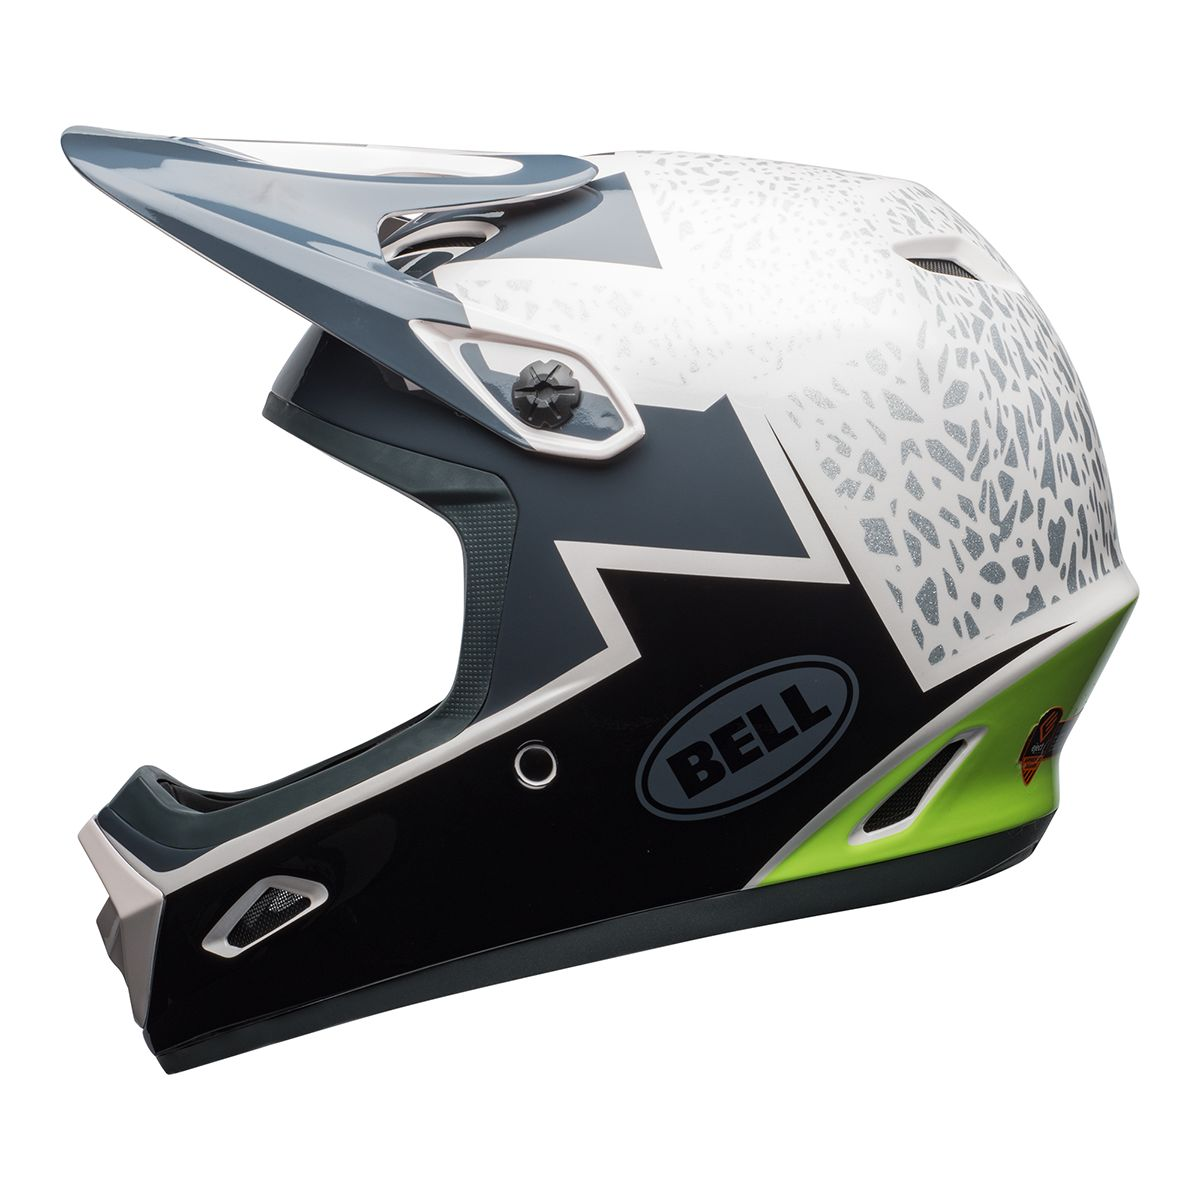 TRANSFER-9 Full Face Helm (B-Ware)